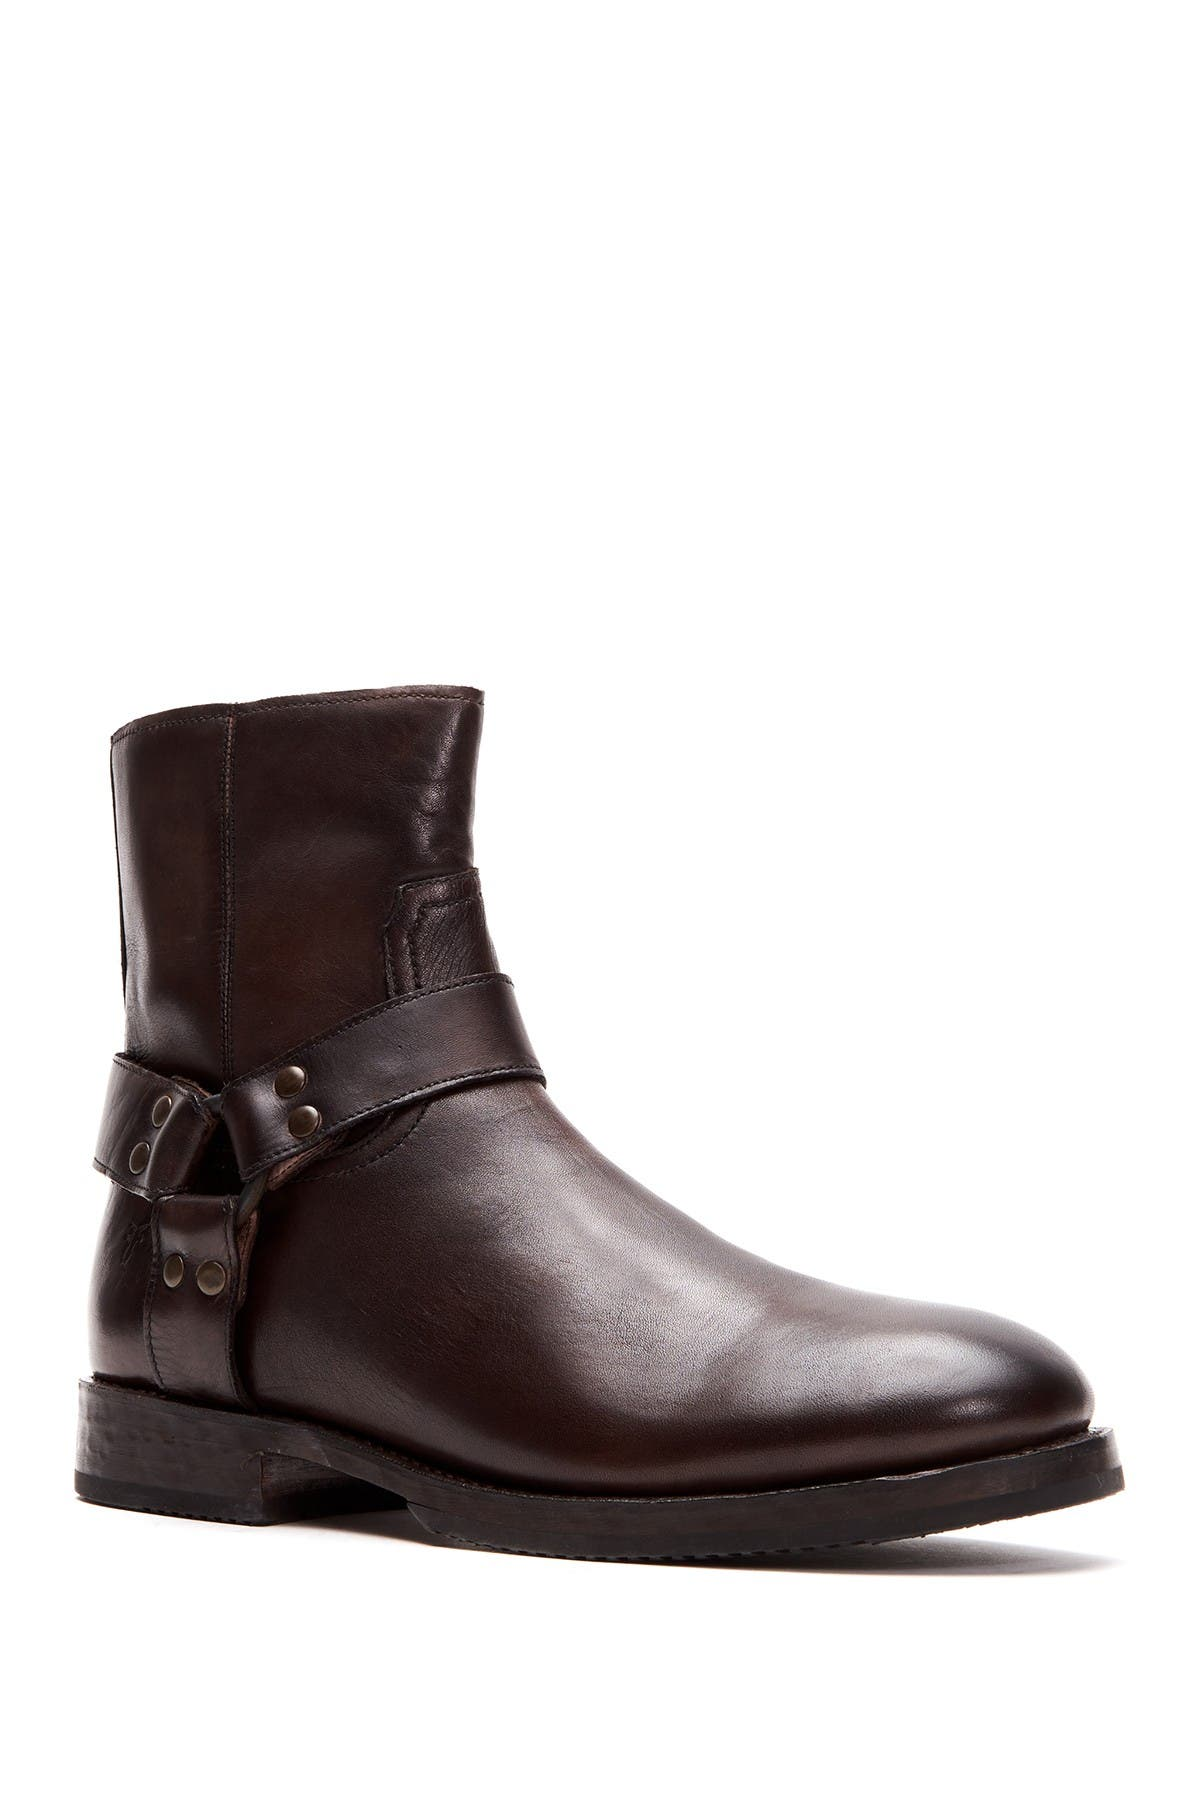 Frye | Nelson Leather Harness Boot